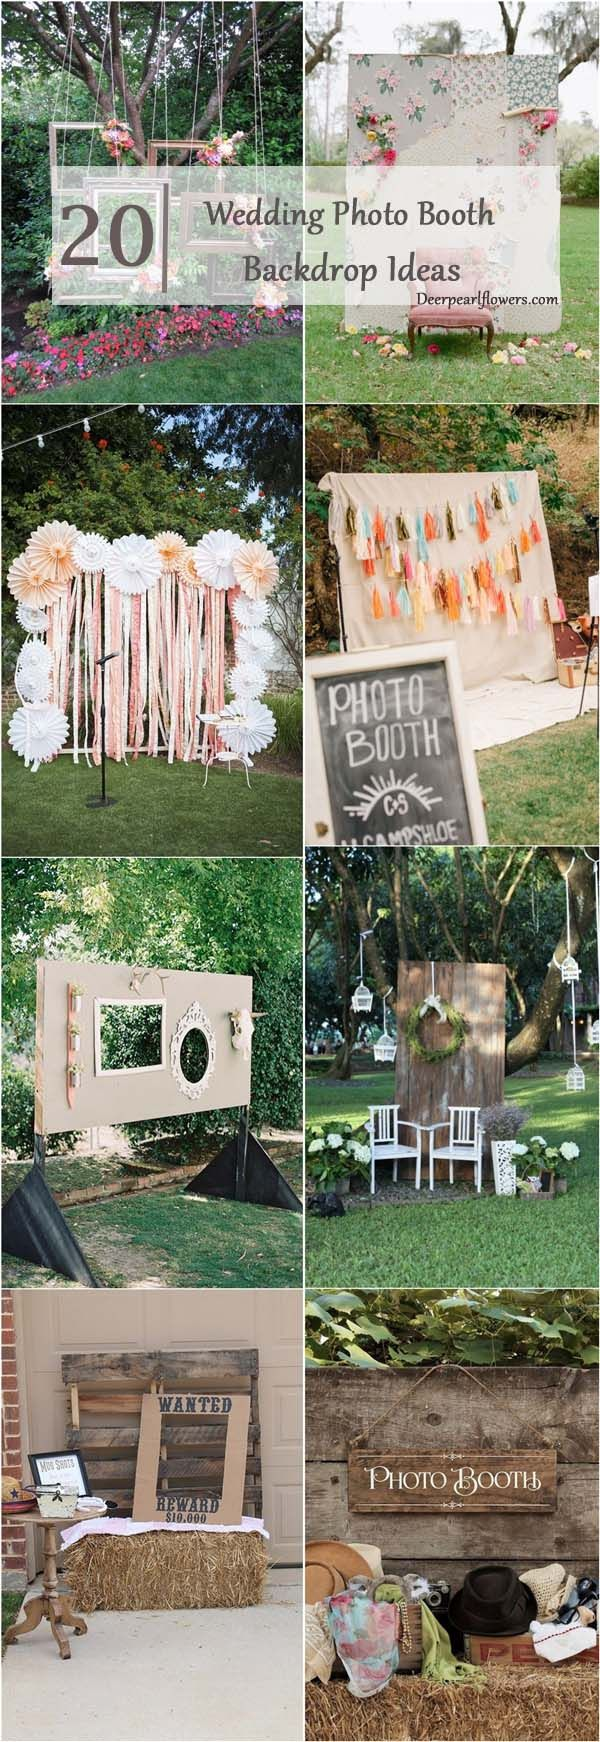 Kreative Hochzeit fotobox ideen / http://www.deerpearlflowers.com/brilliant-wedding-photo-booth-ideas/